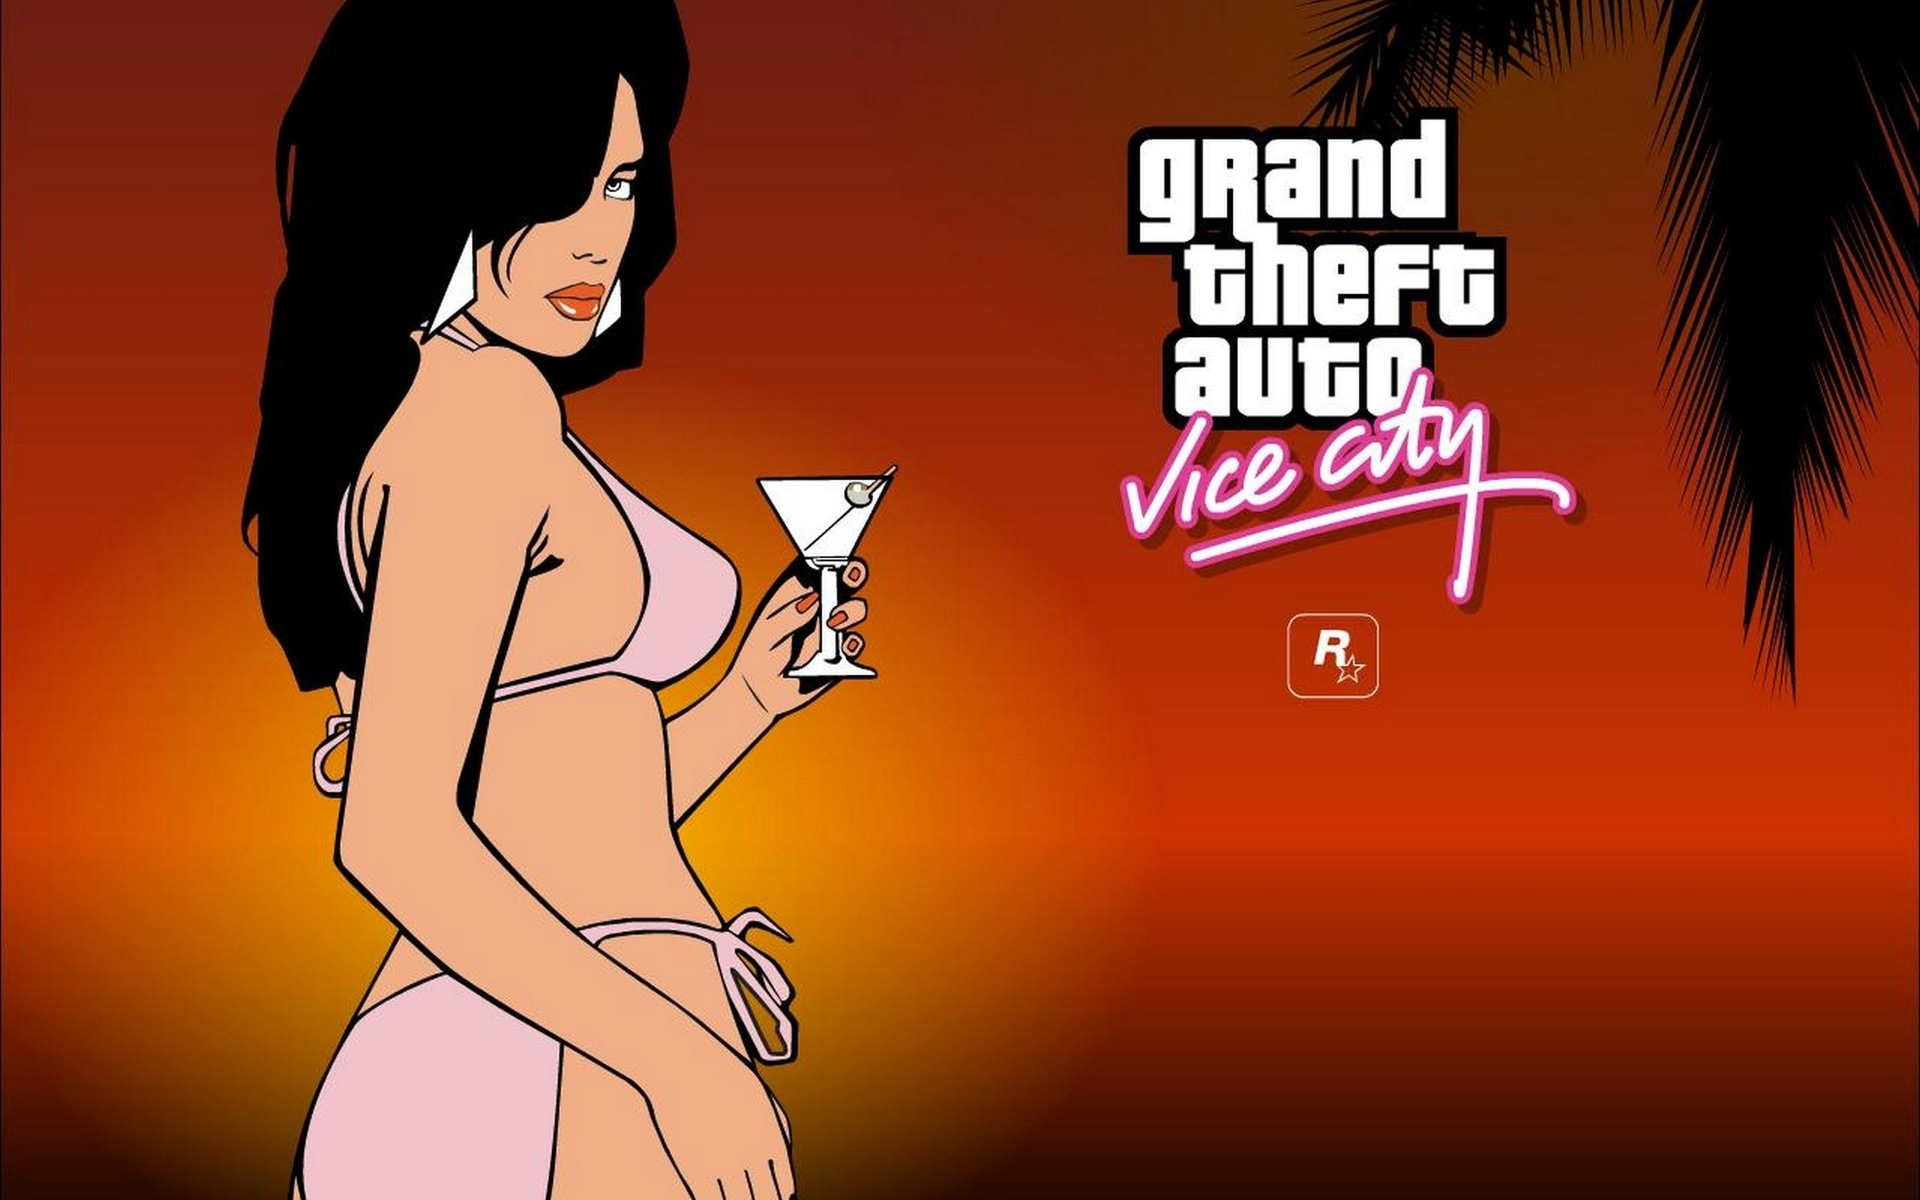 Gta vice city nude picture sex galleries